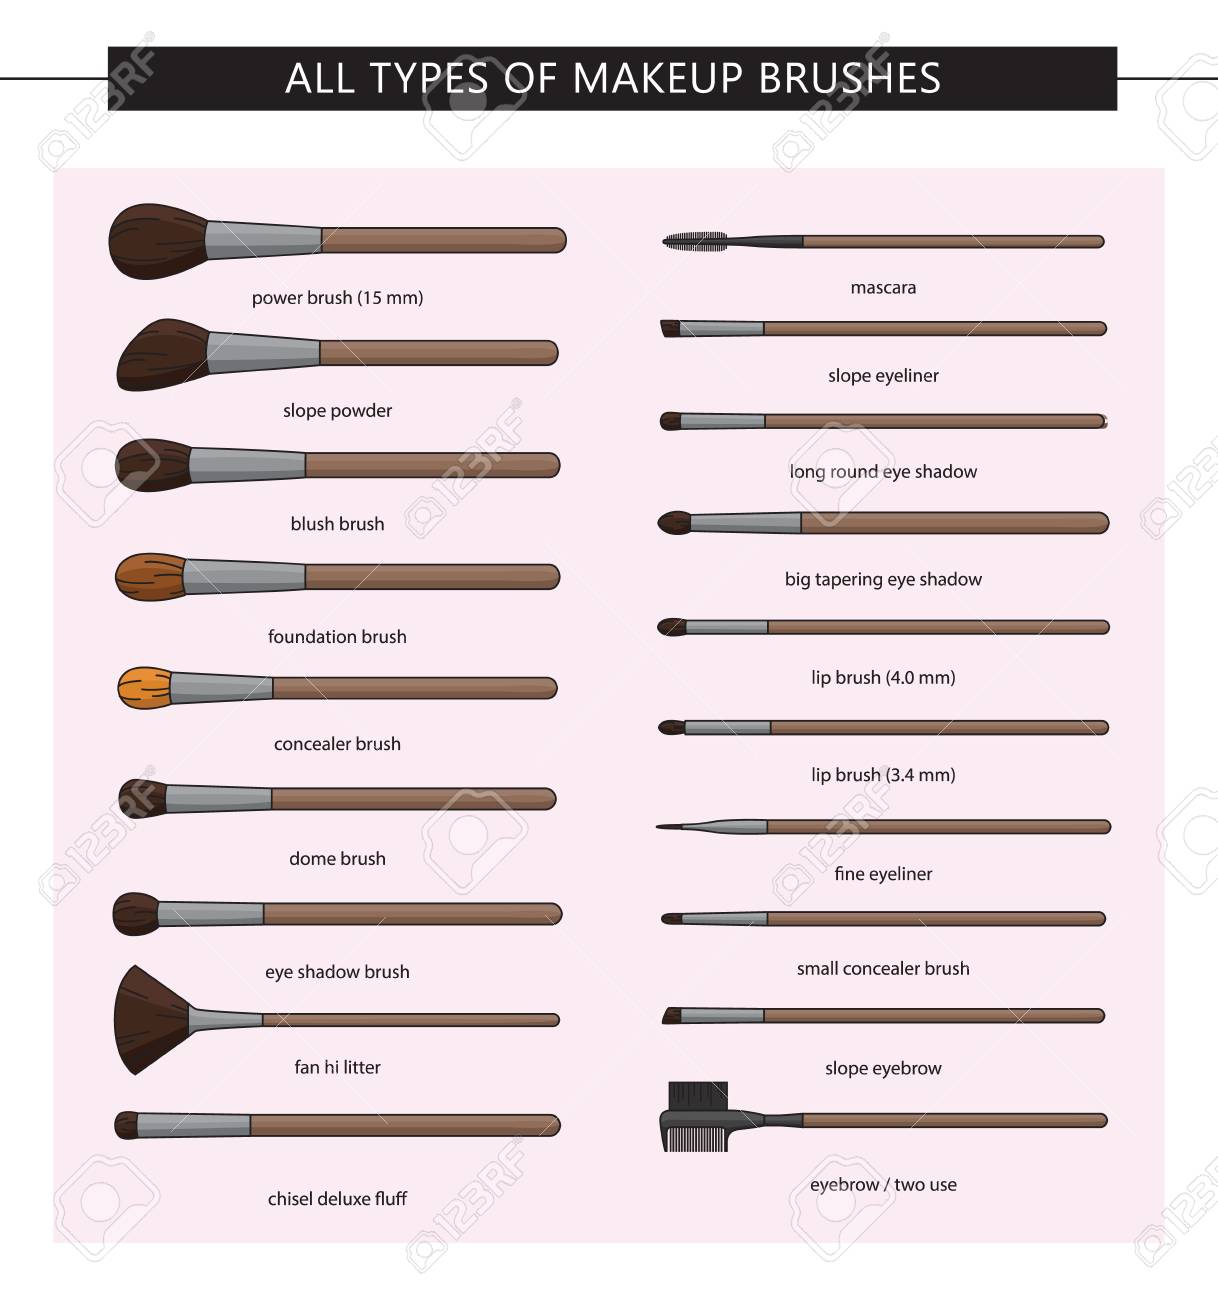 All types of makeup brushes. Vector set. Makeup brushes kit.Iisolated